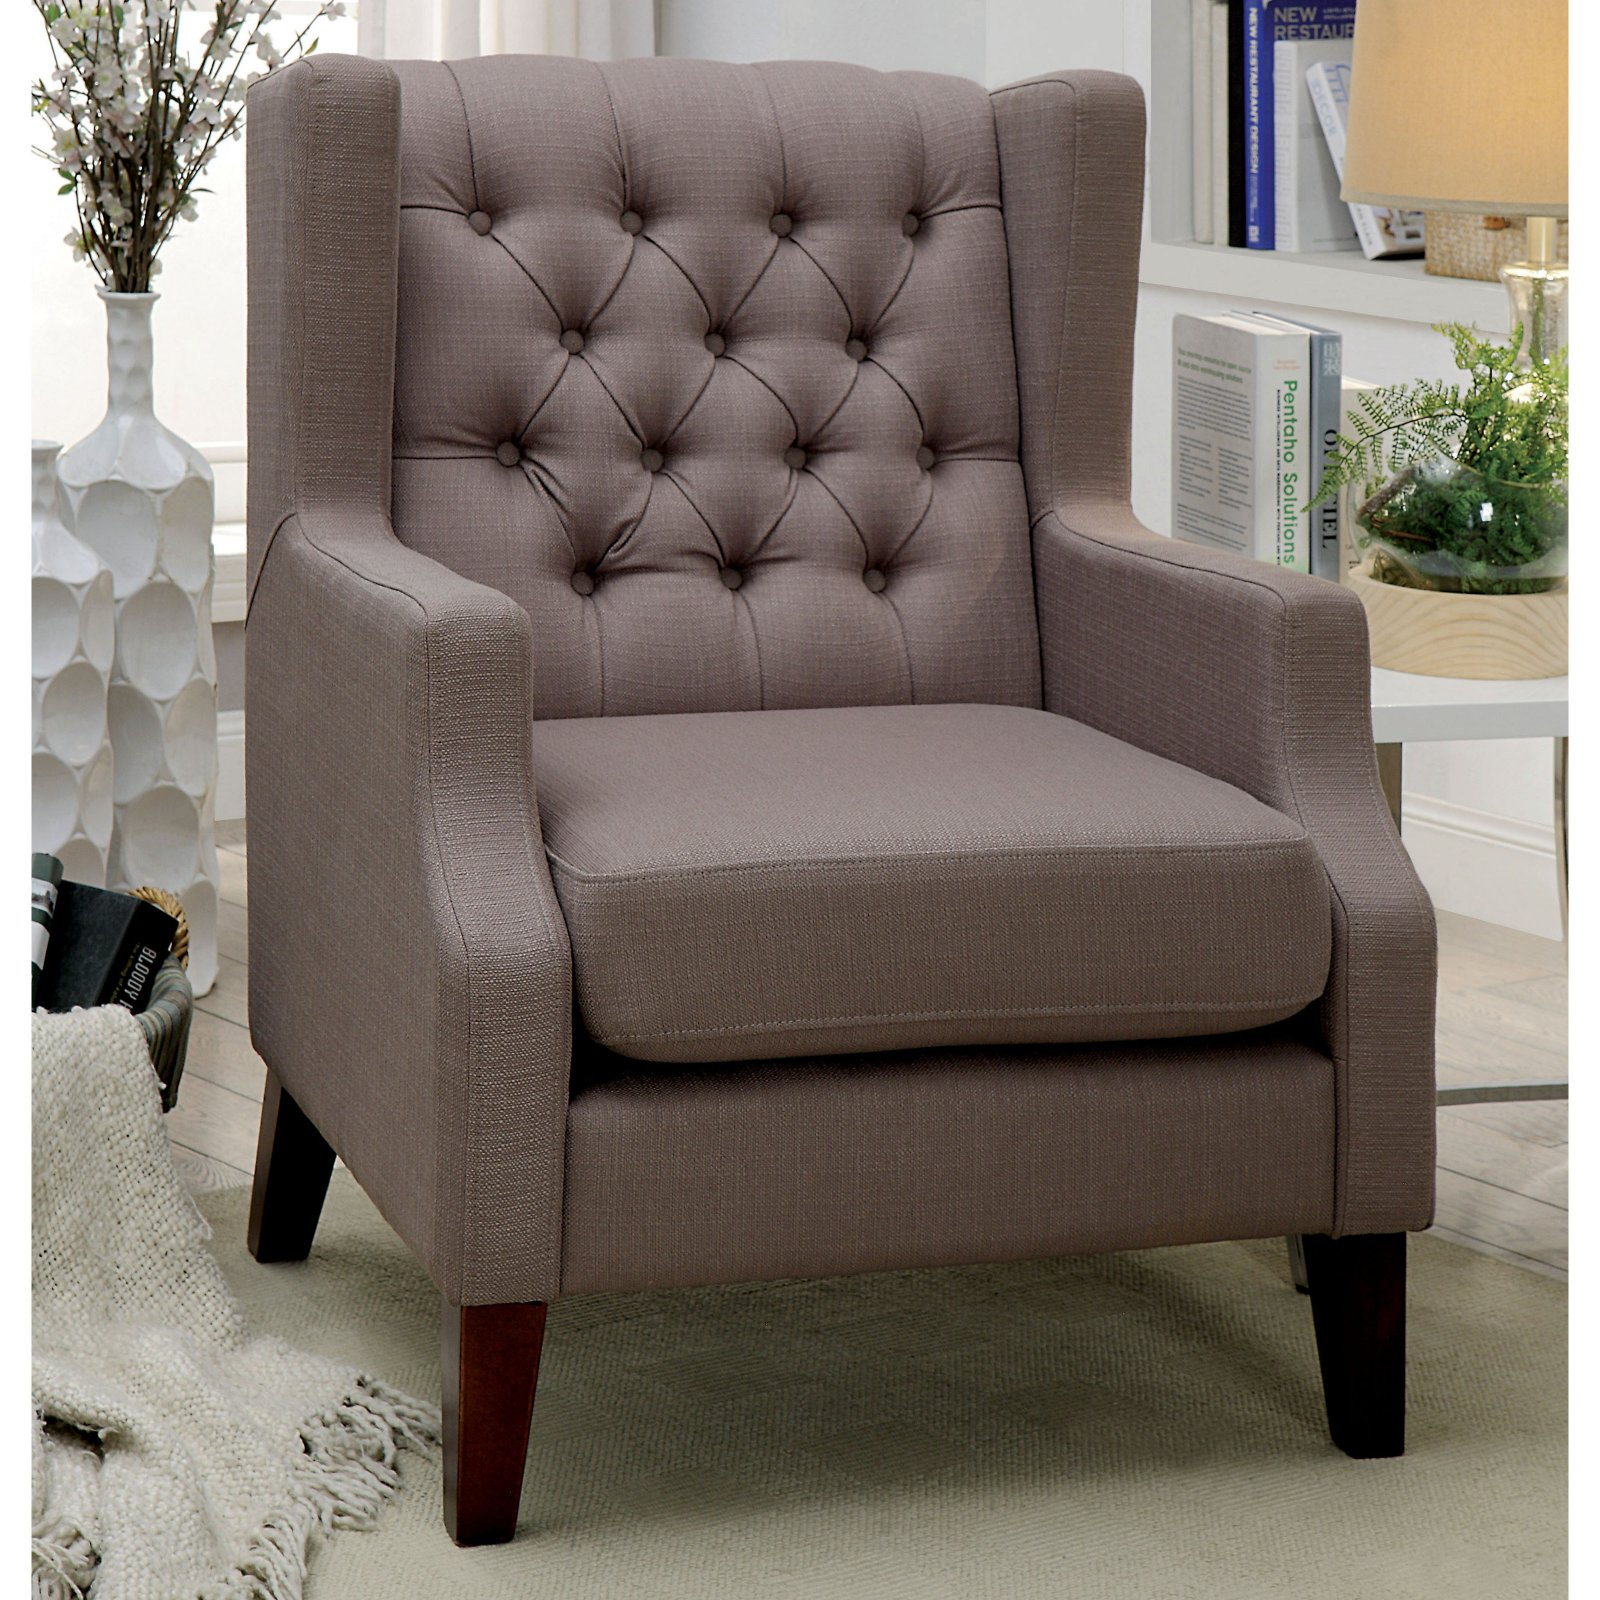 Furniture of America Zarra Contemporary Style Wingback Arm Chair